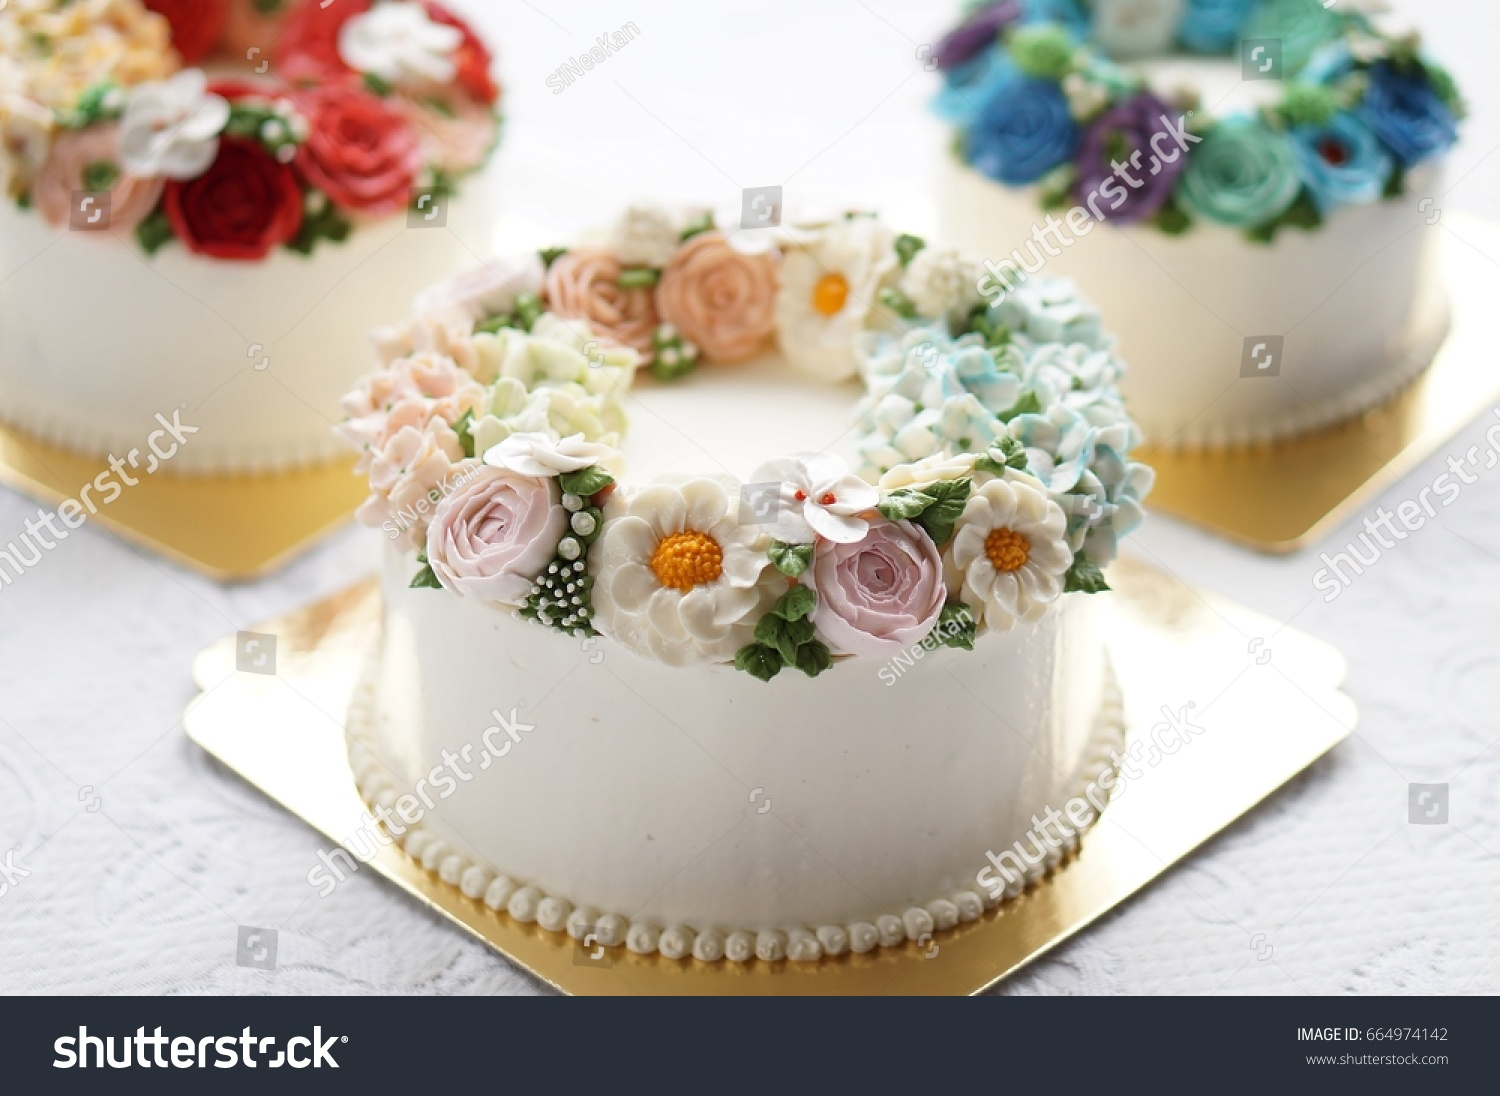 Birthday Cake Flowers On Lace White Stock Photo Edit Now 664974142